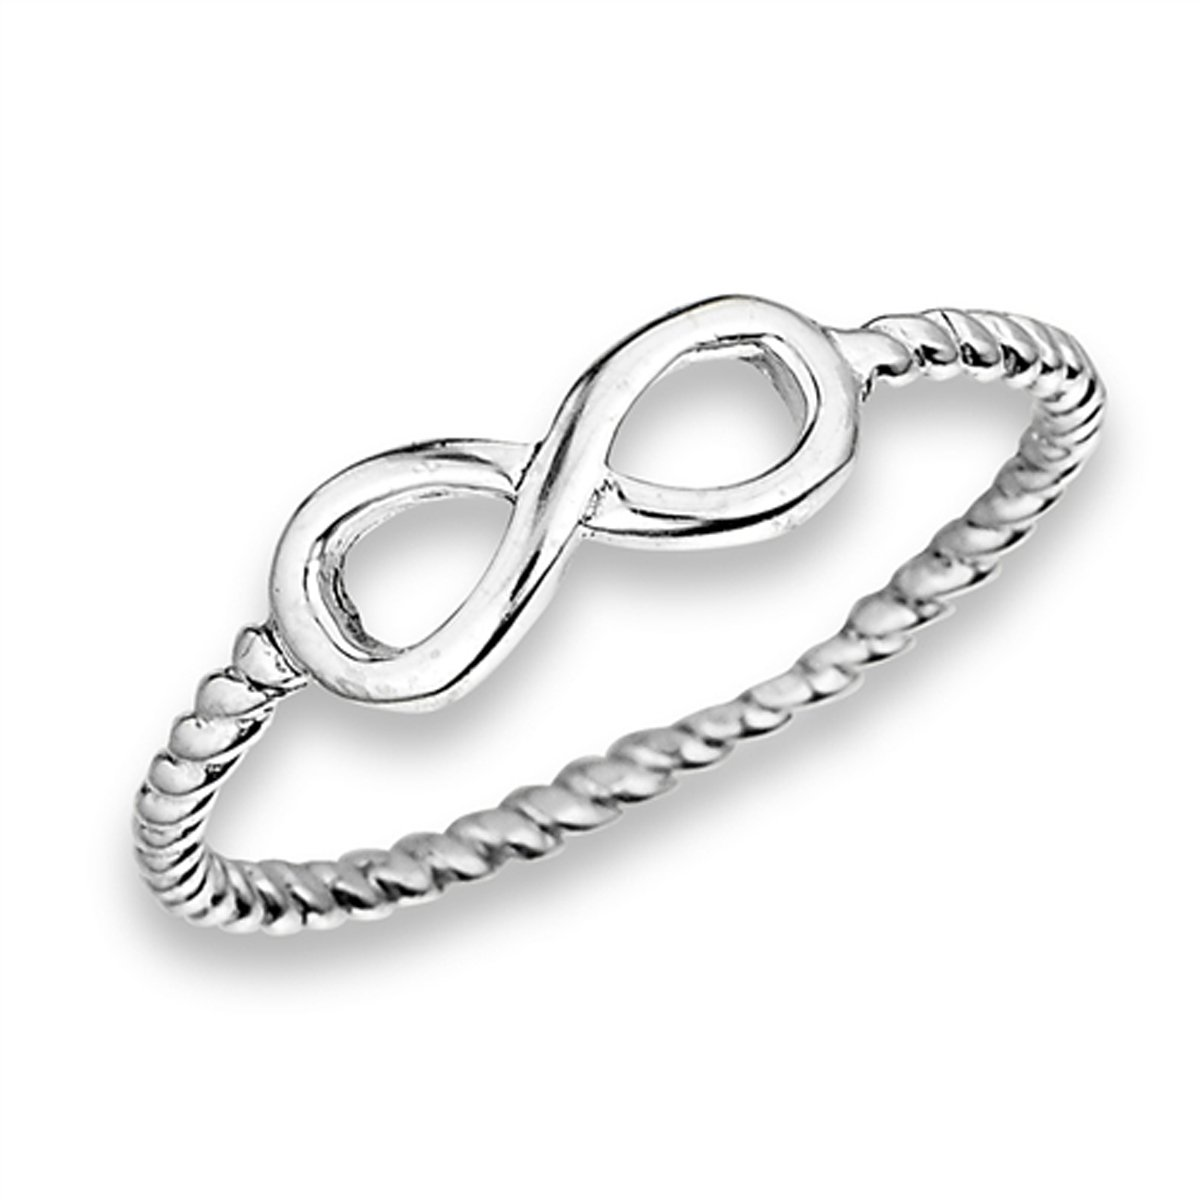 Sterling Silver Stunning Women's Flawless Colorless Cubic Zirconia Infinity Ring (Sizes 4-10) (Ring Size 8)